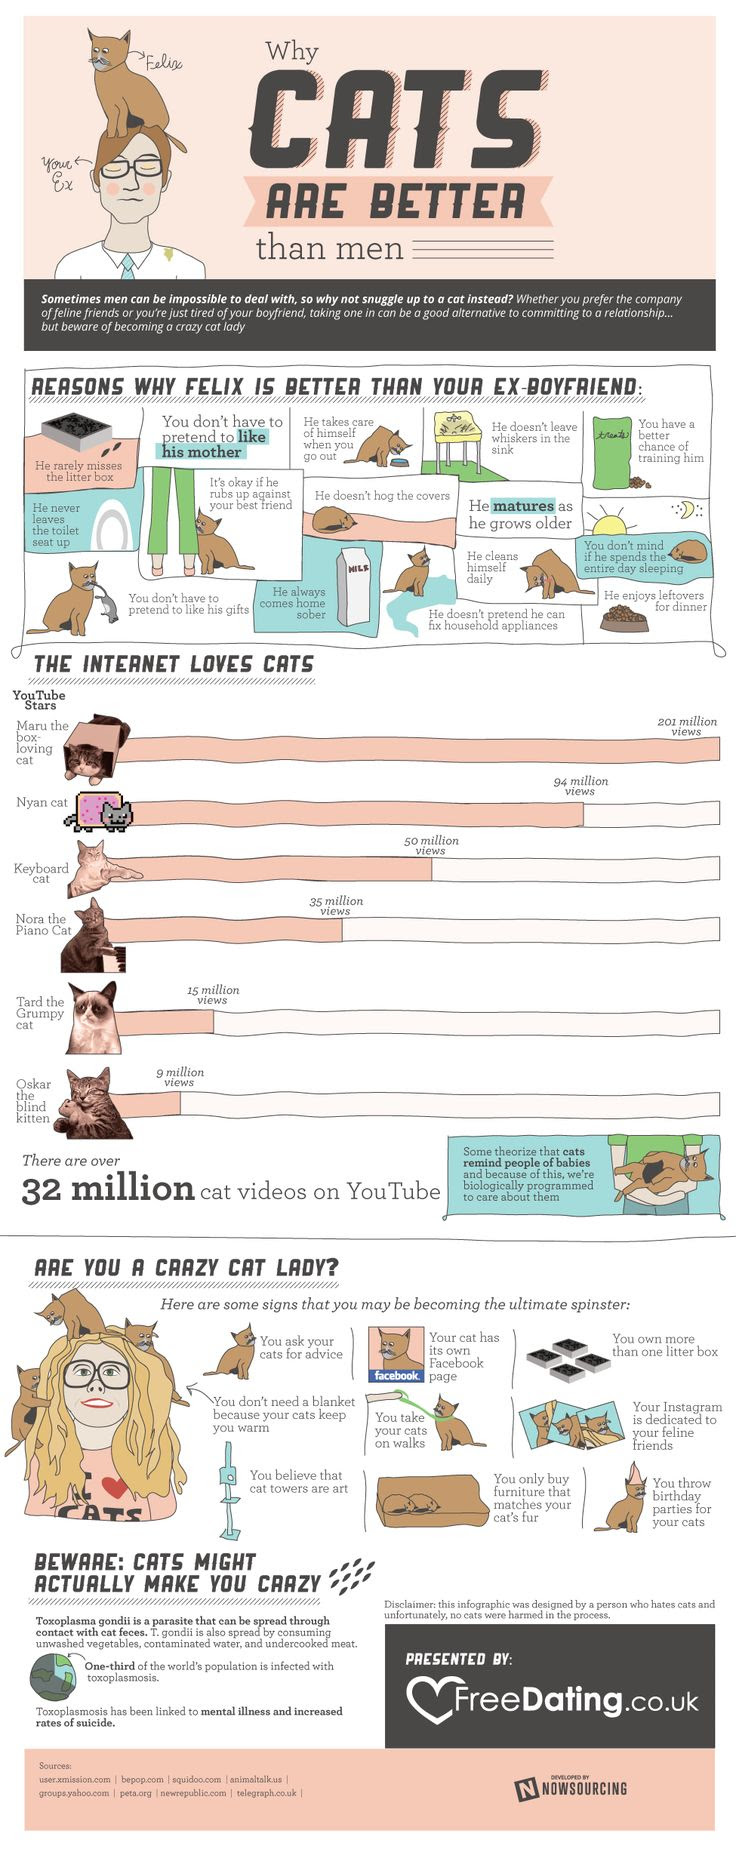 This infographic takes a look